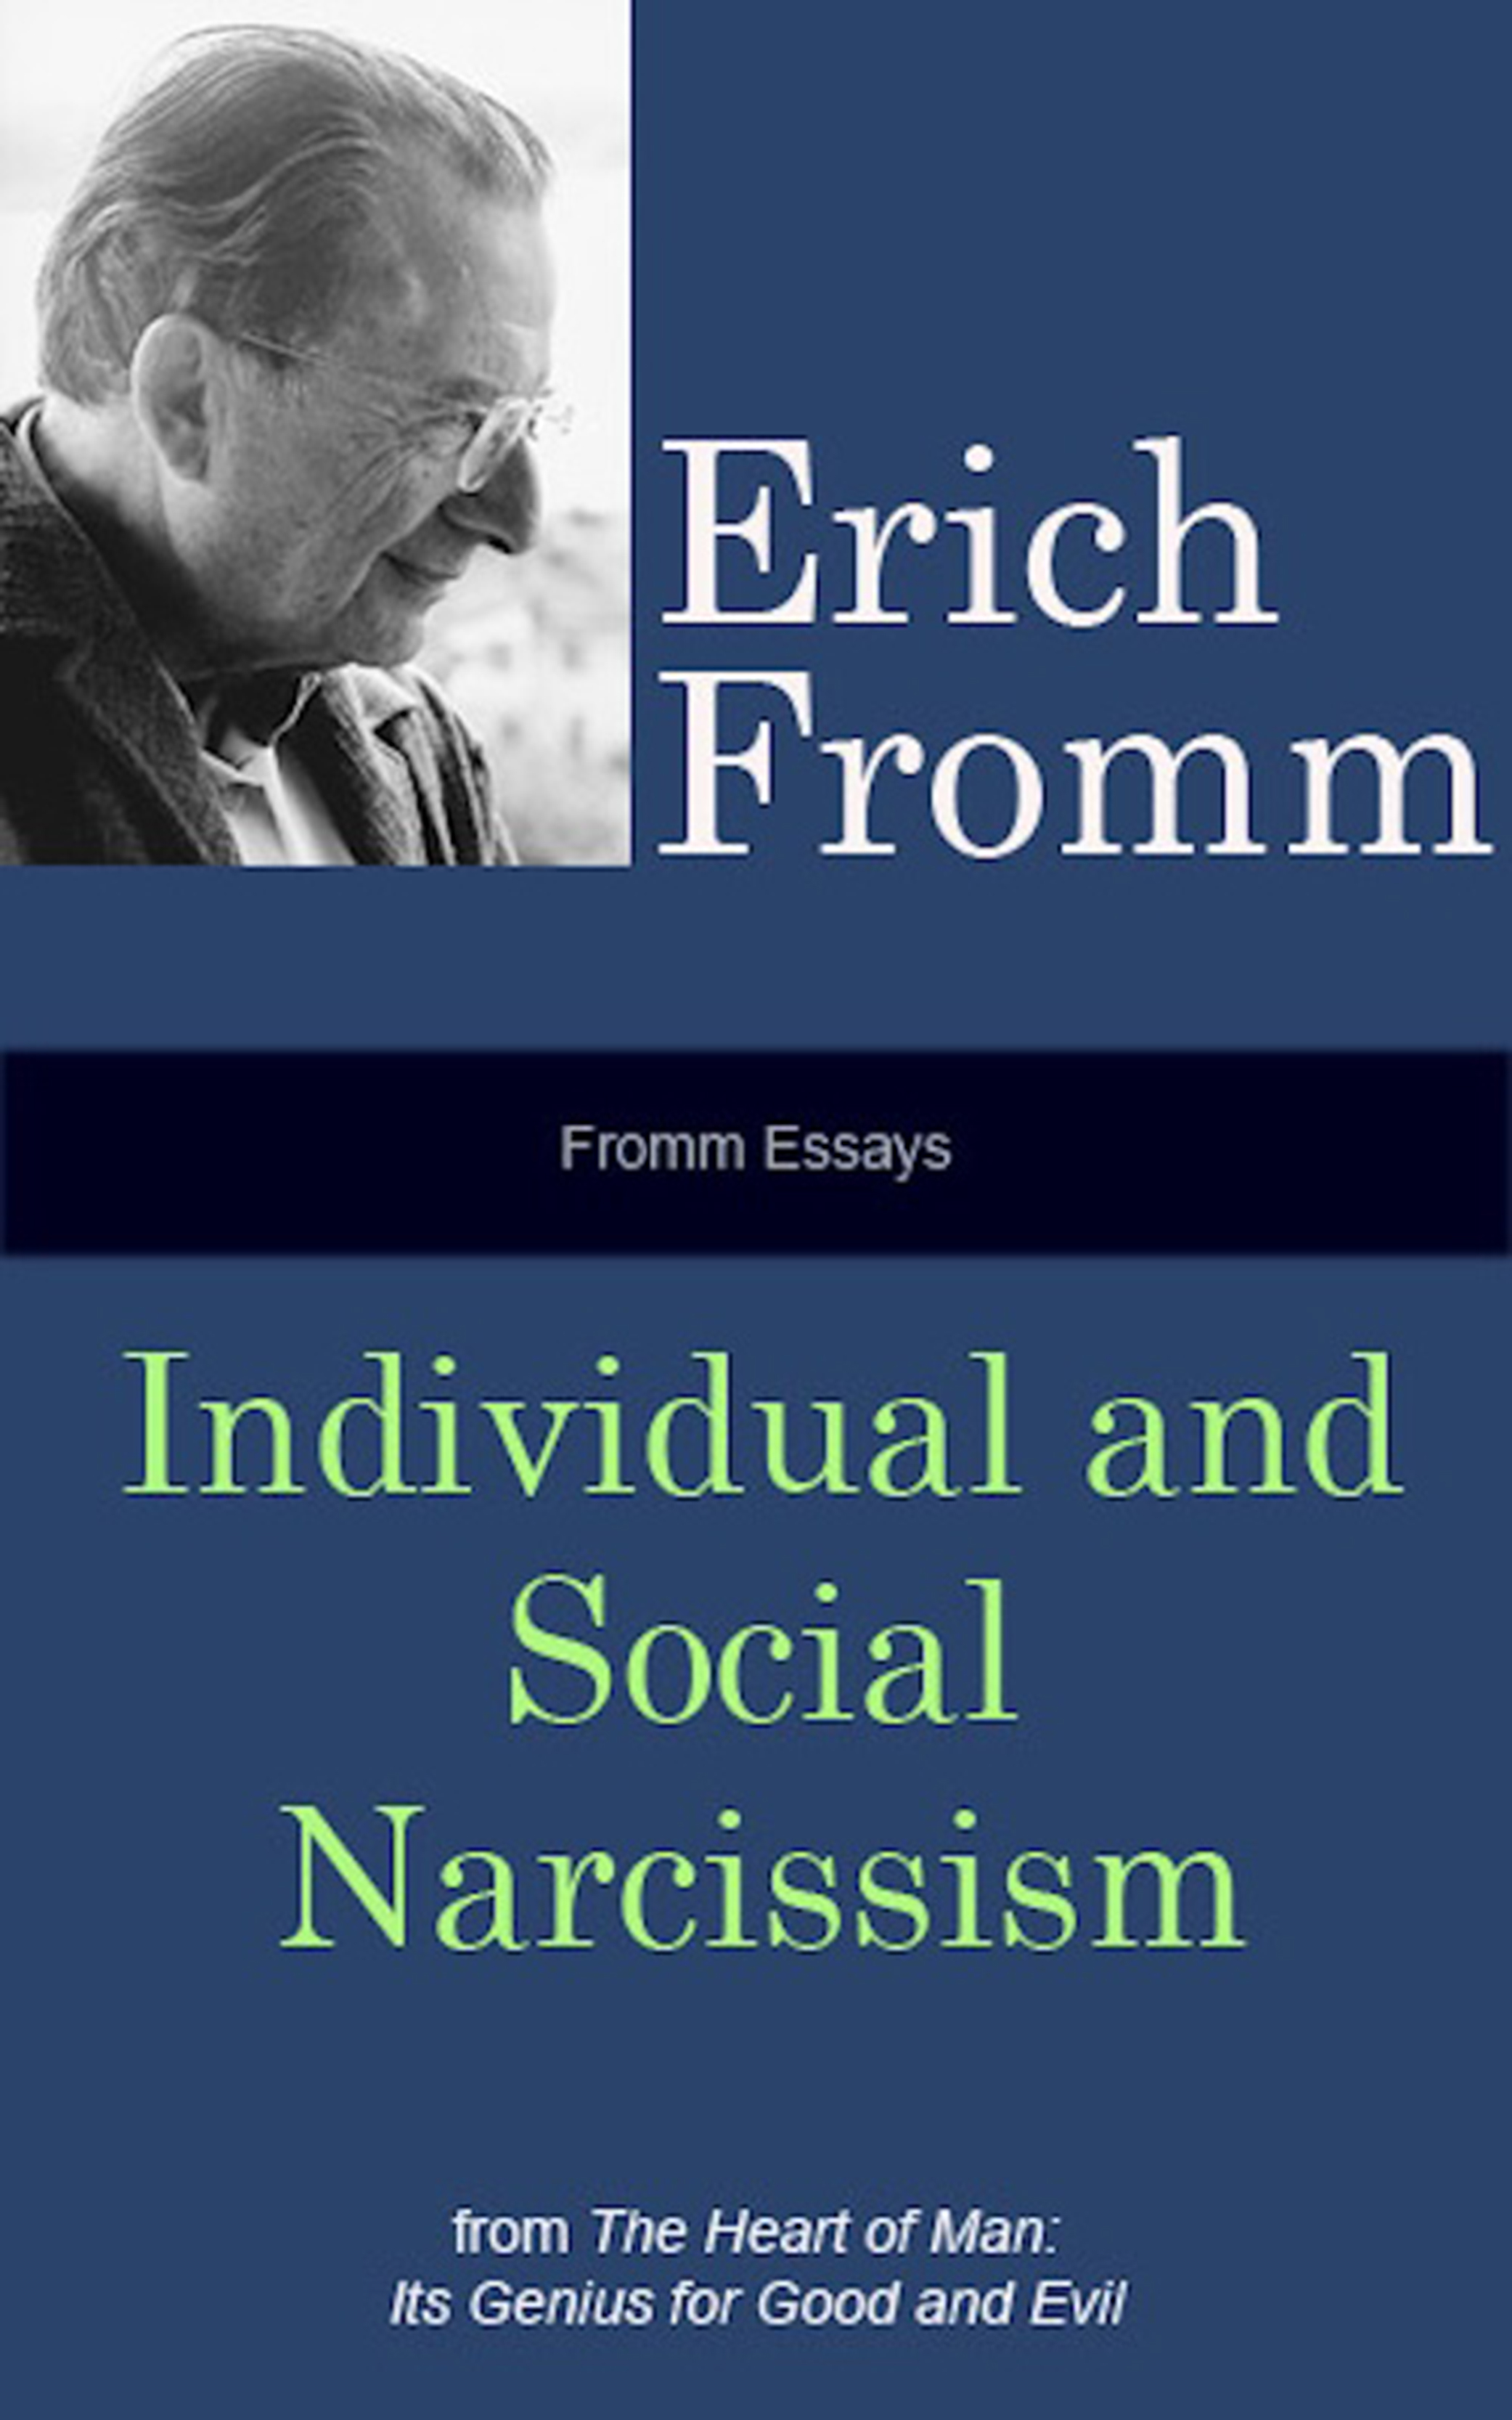 on narcissism essay